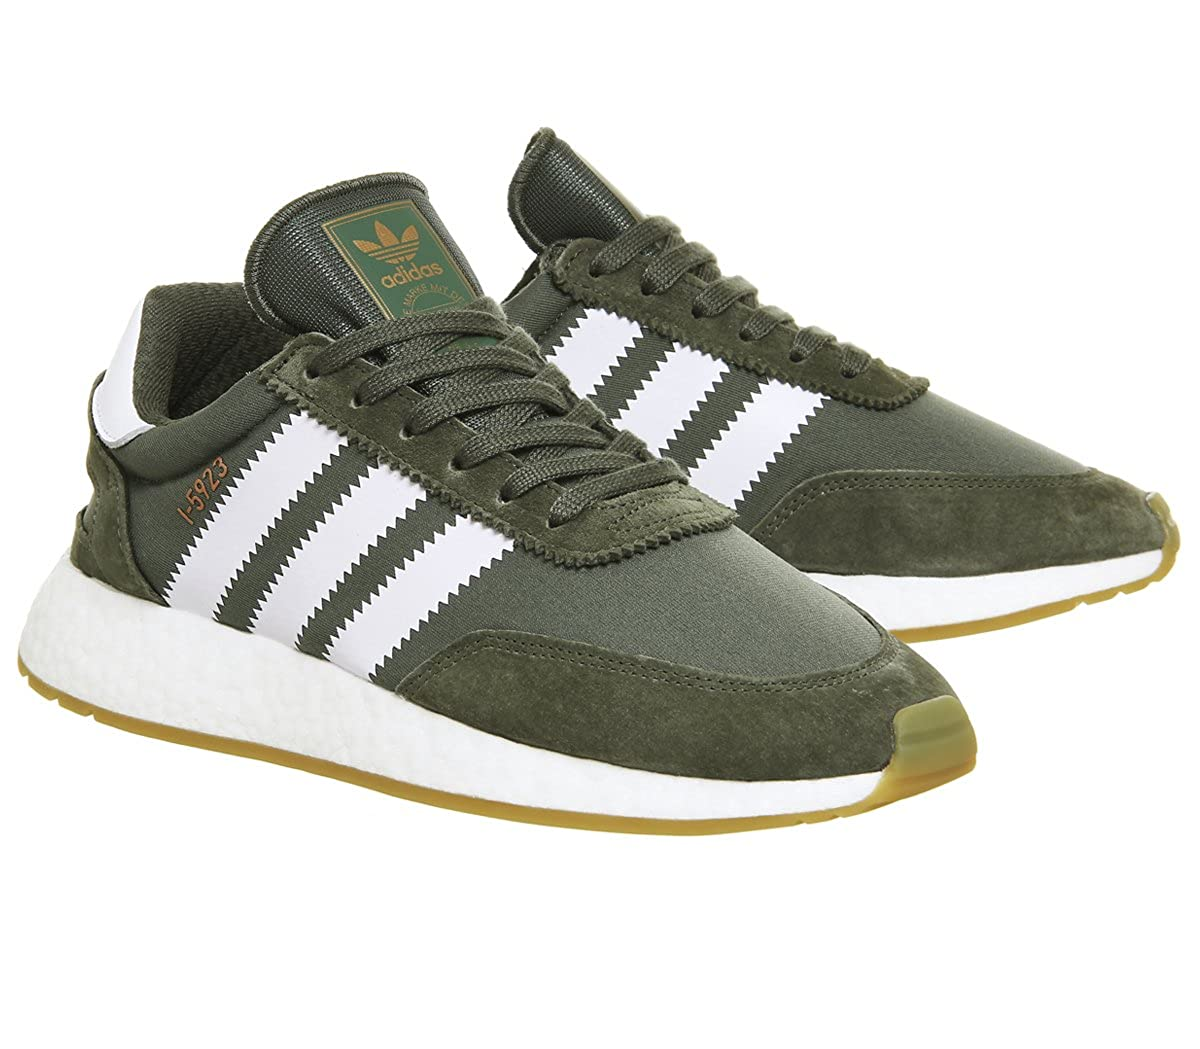 adidas I-5923 Calzado Base Green/FTWR White: Amazon.es: Zapatos y complementos